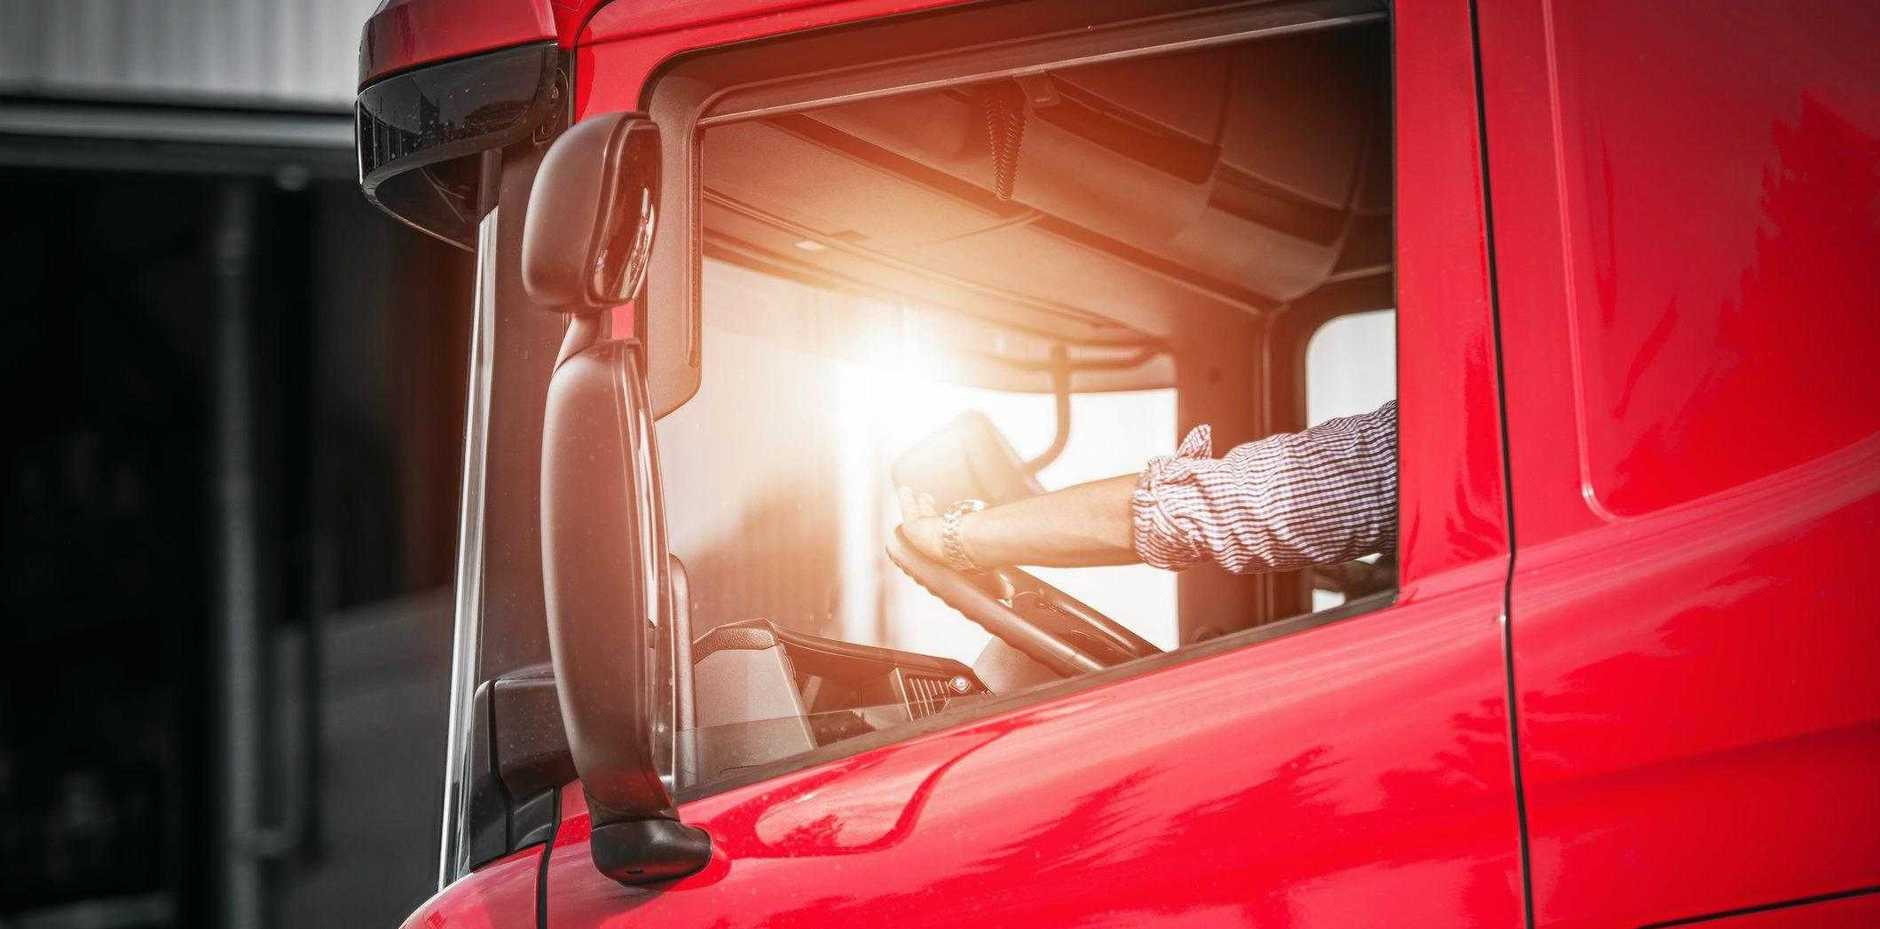 A truck driver's brazen assaults on a young girl happened in the child's home and in his truck as they criss-crossed north Queensland on work trips.